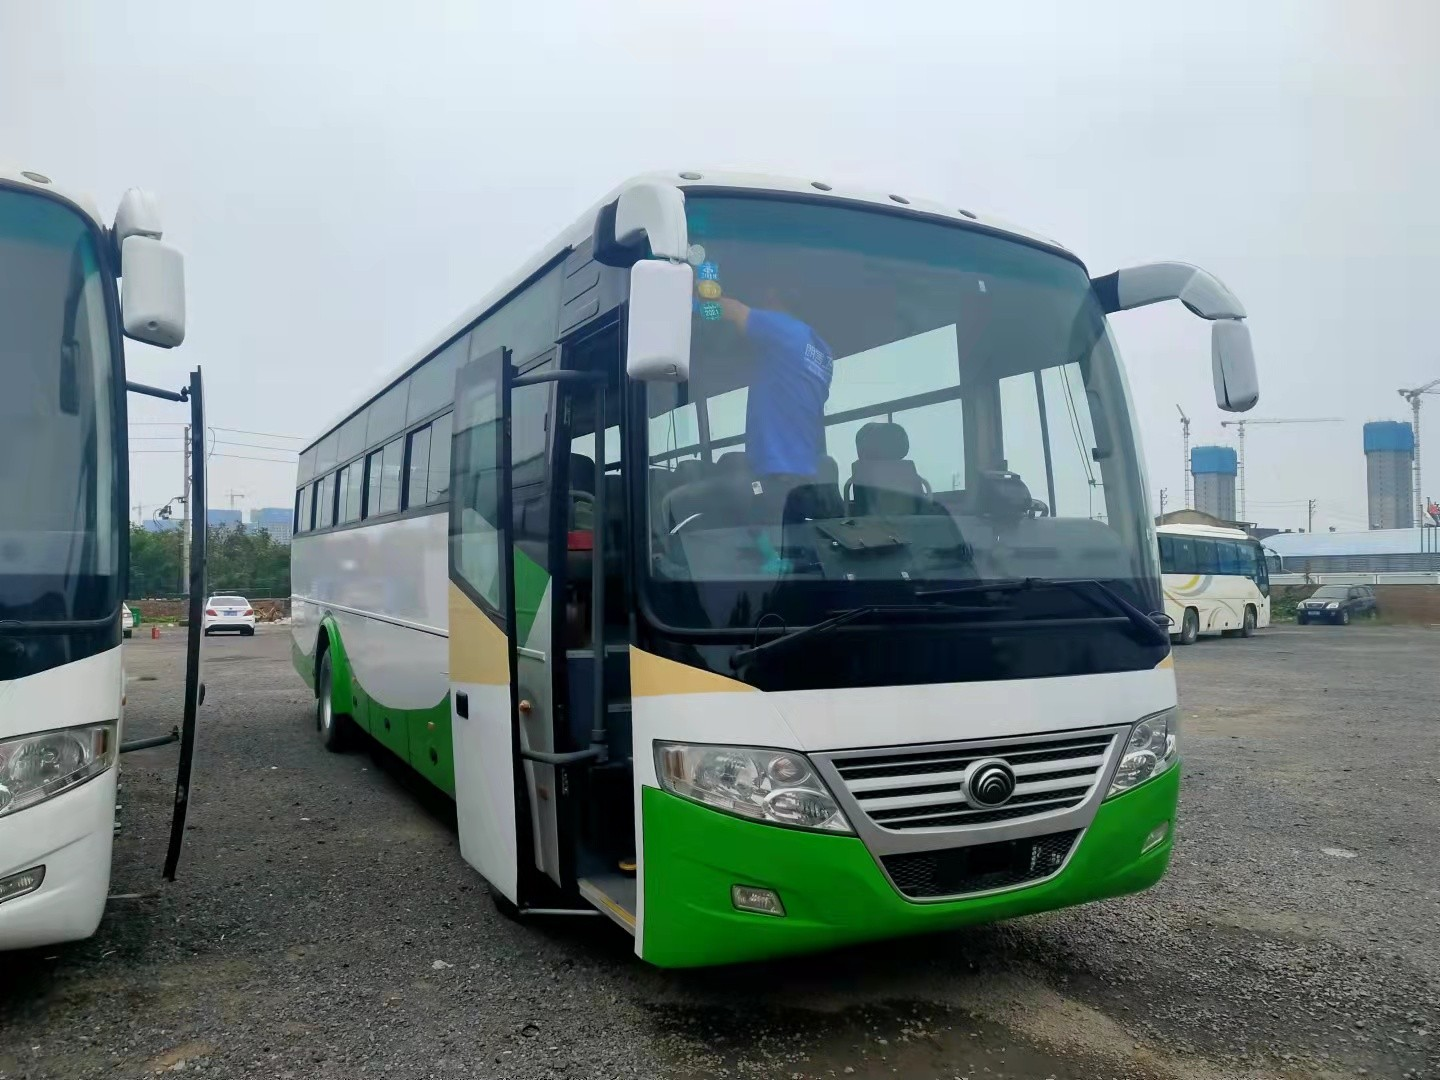 55 Seats 2013 Year Used Yutong Bus ZK6112D Diesel Engine LHD Driver Steering No Accident